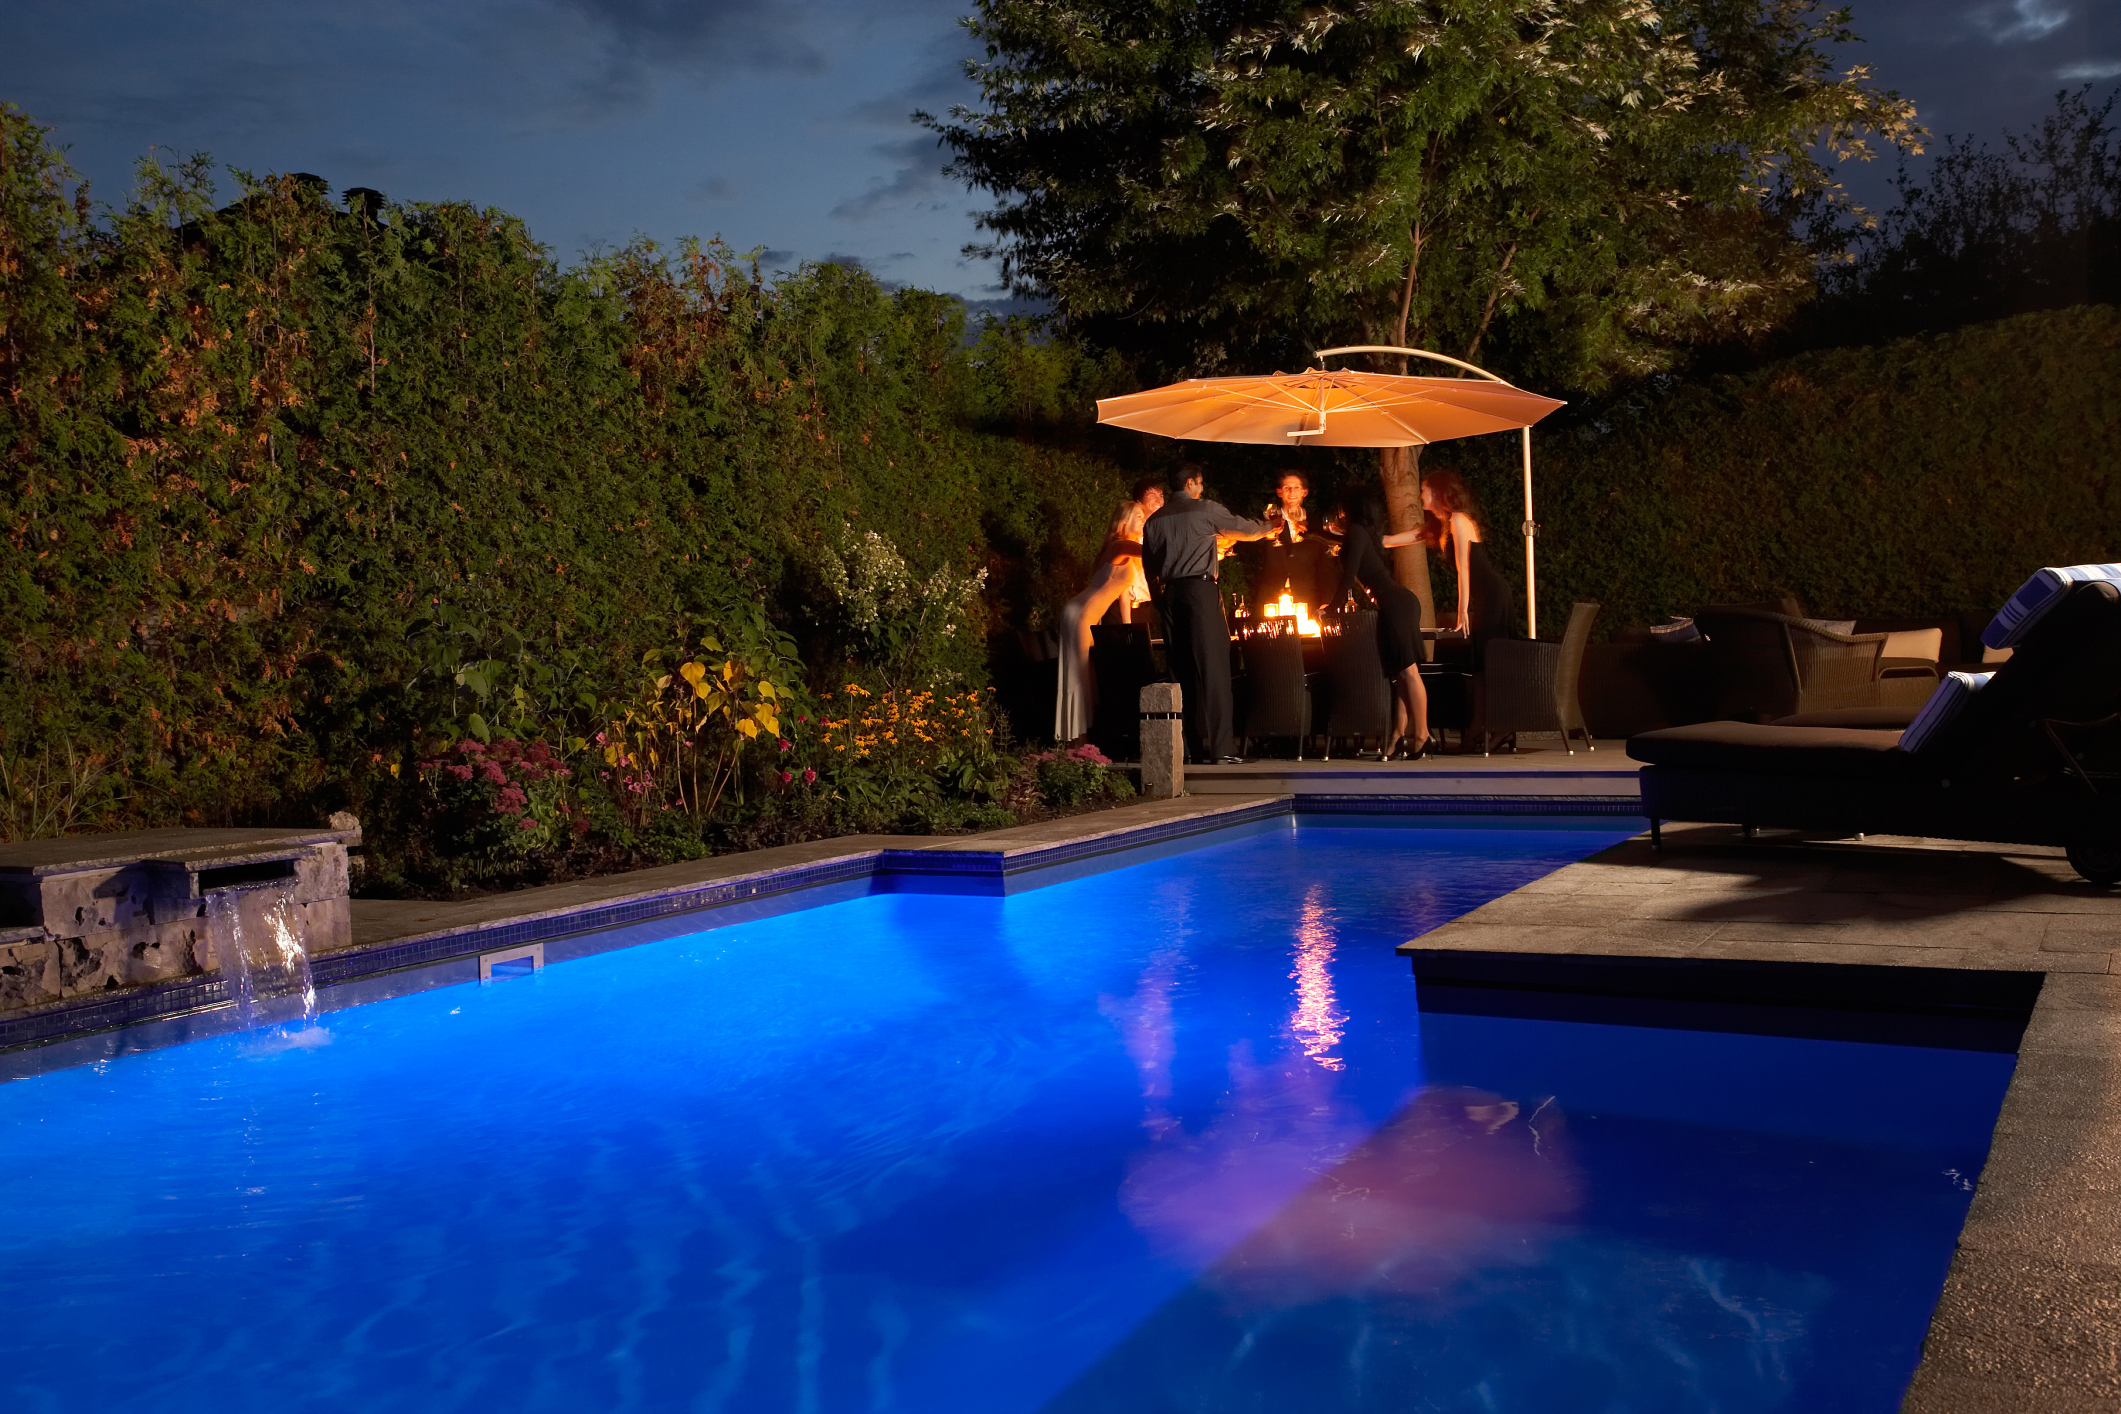 How to Make a Pool Glow | Garden Guides